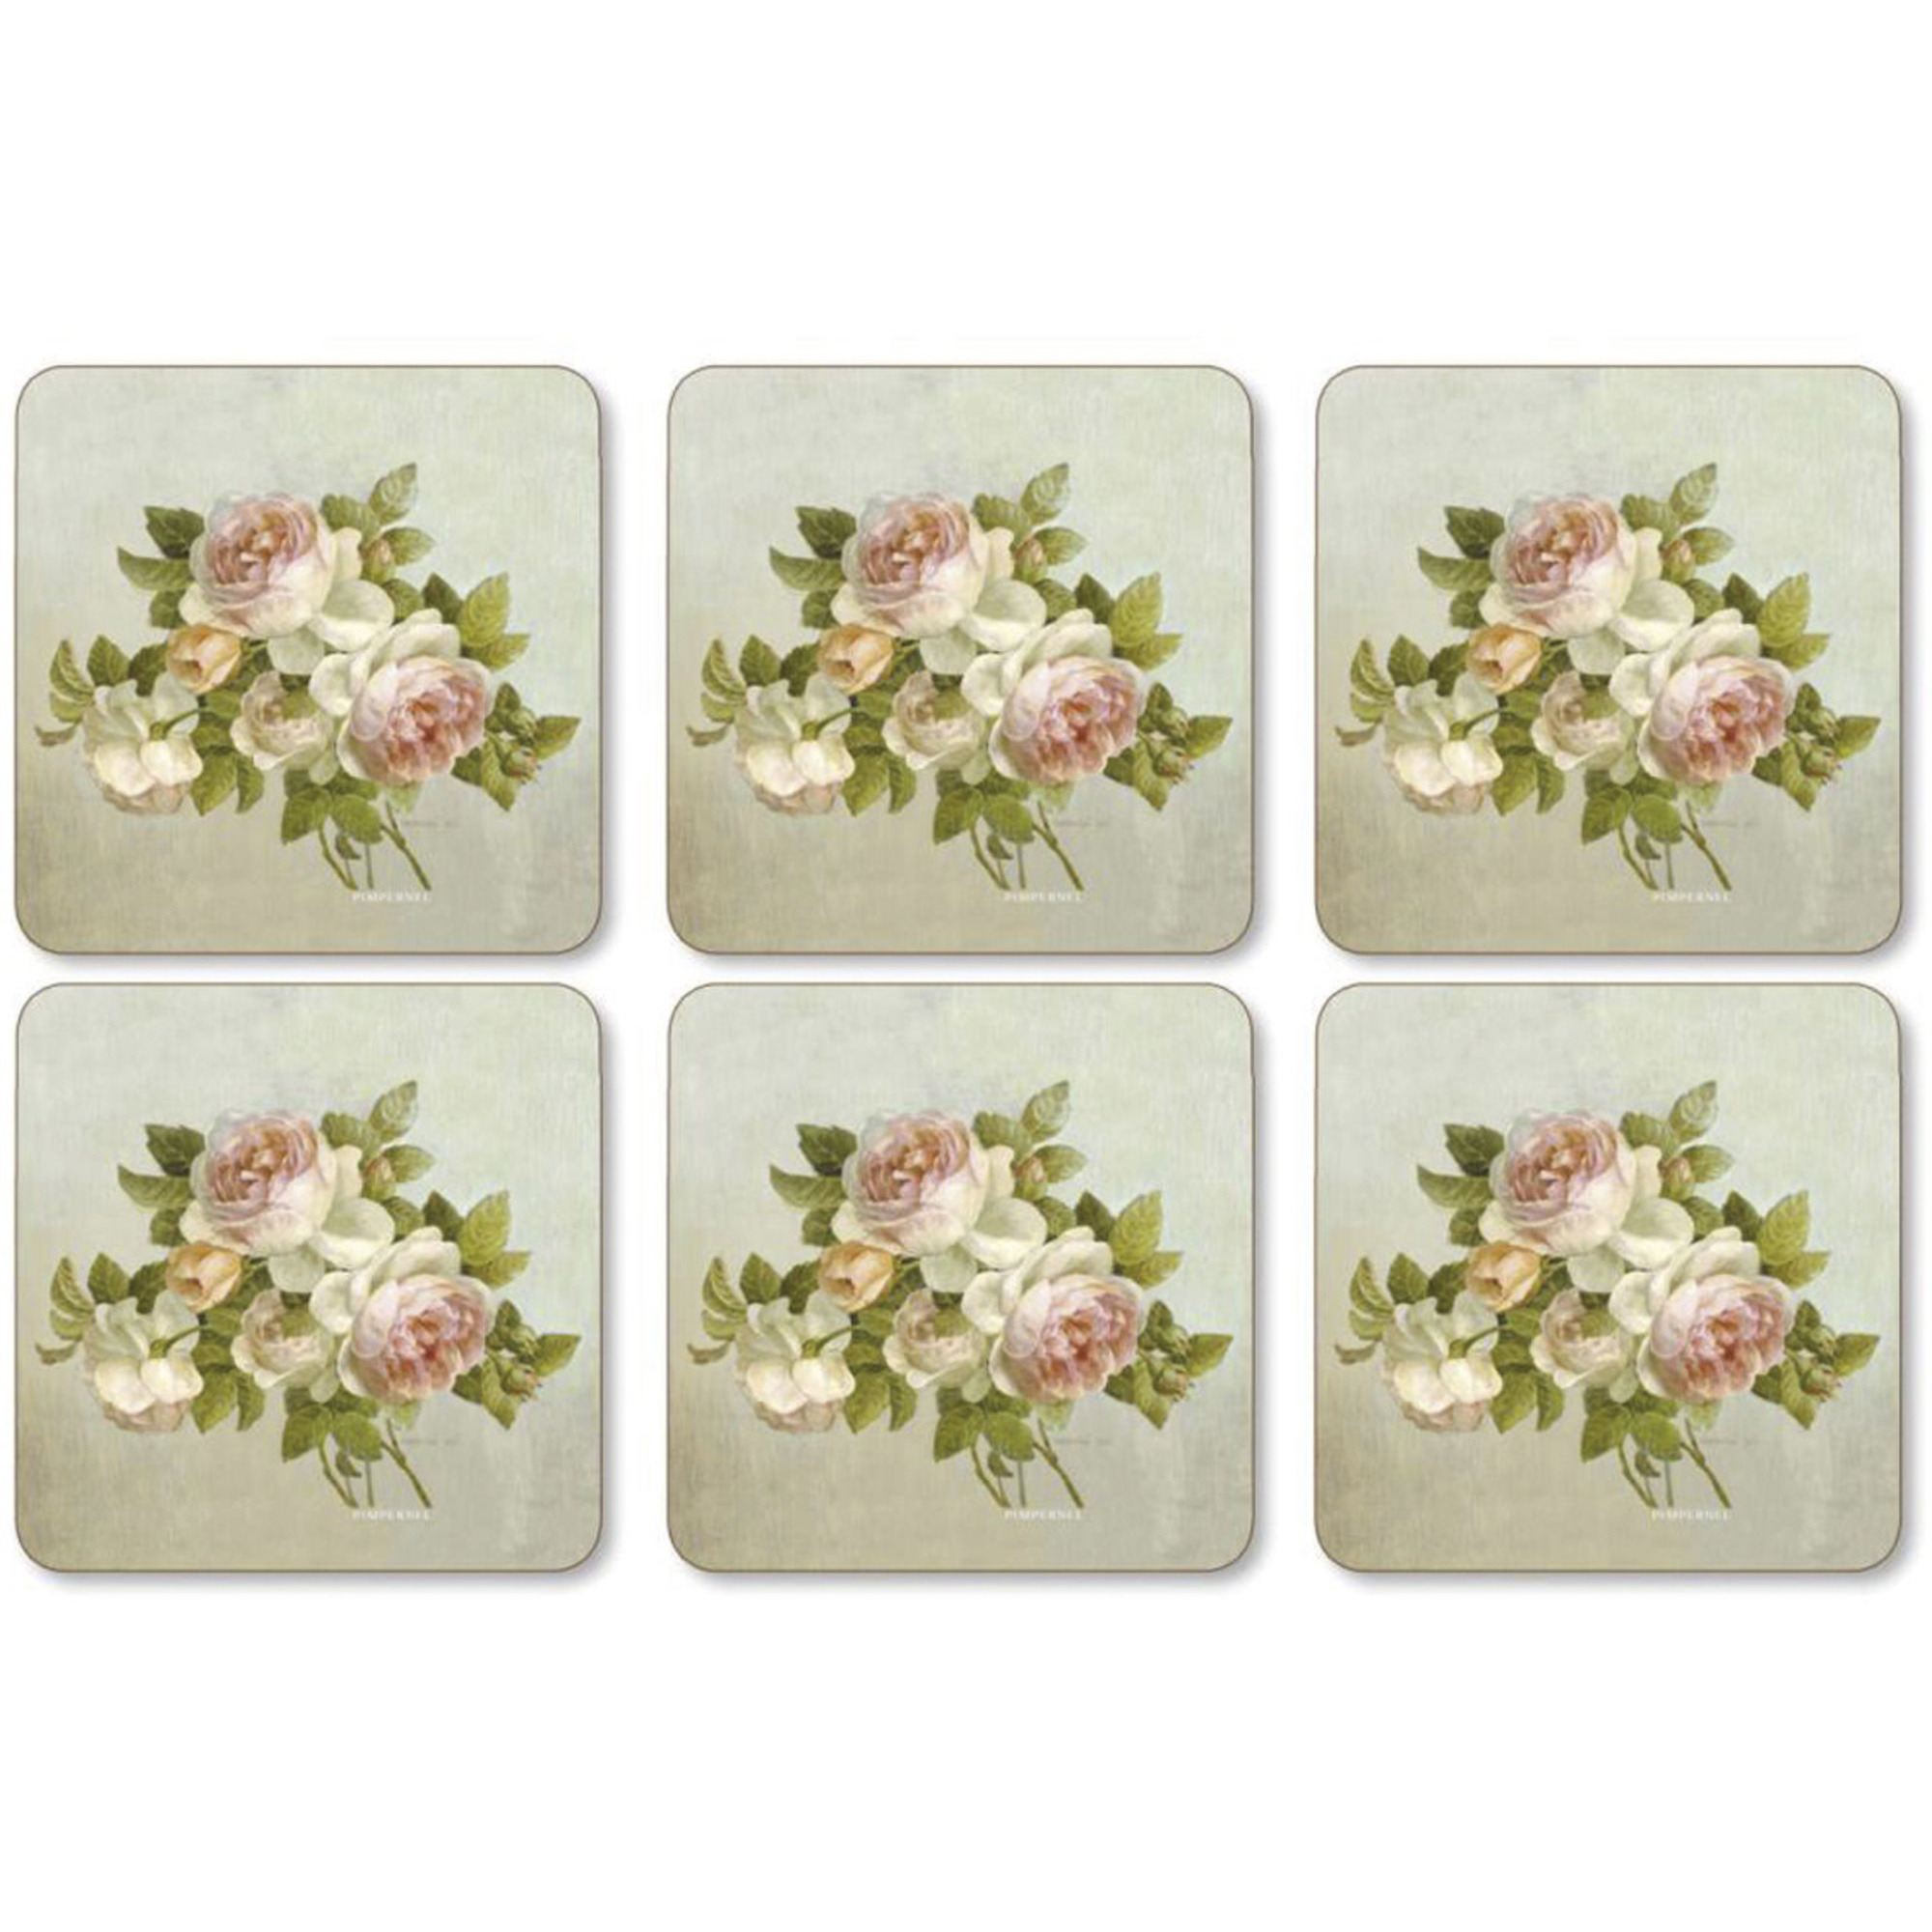 Pimpernel Antique Rose Glasunderlägg 6-pack